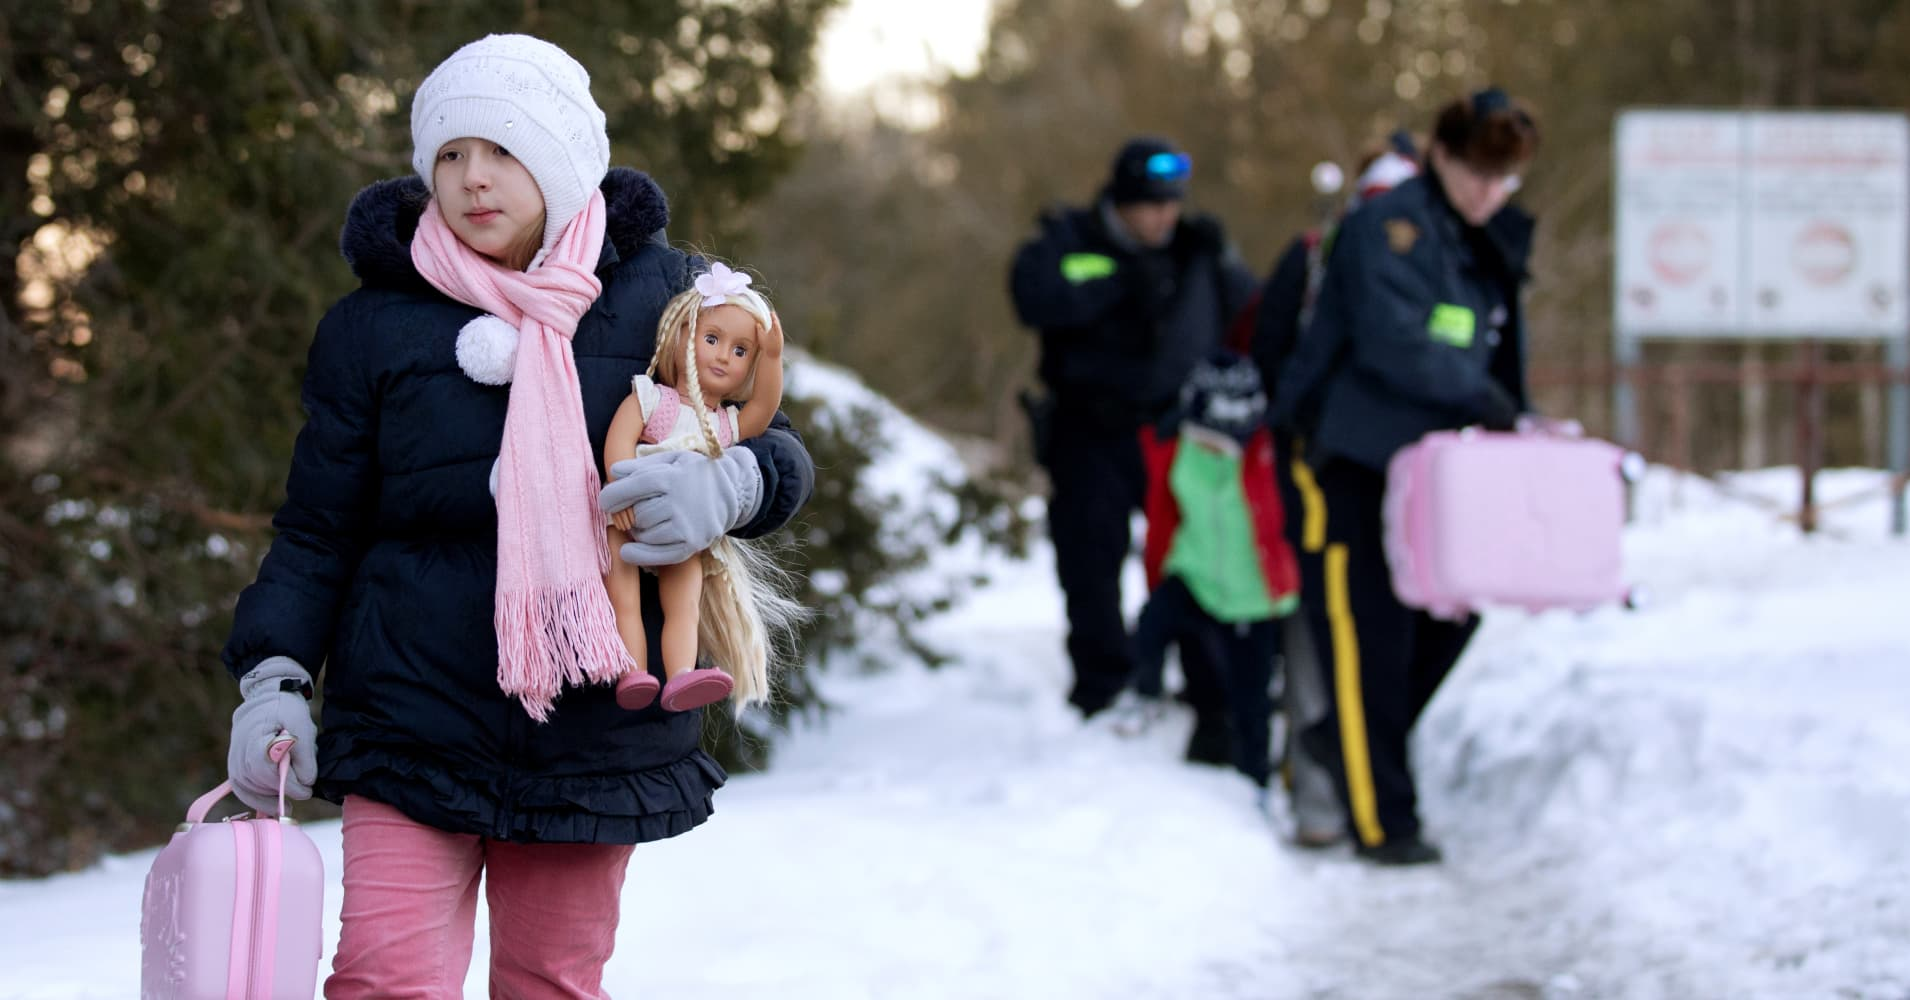 A young girl carries her doll and suitcase as her family that claimed to be from Turkey are met by Royal Canadian Mounted Police (RCMP) officers after they crossed the U.S.-Canada border illegally leading into Hemmingford, Quebec, Canada, March 20, 2017.